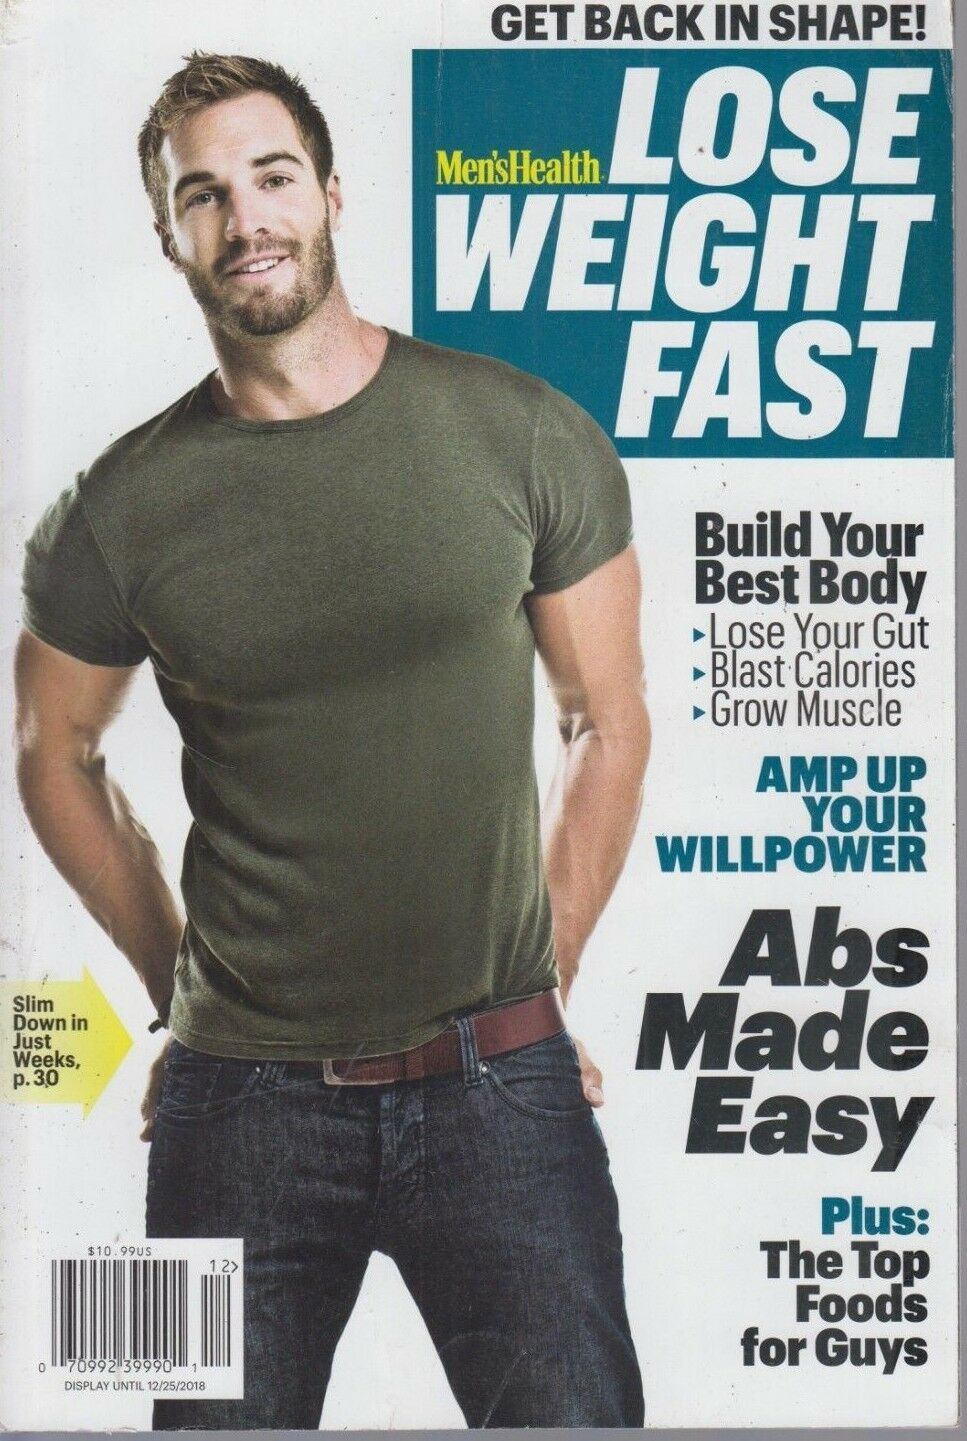 Men's Health Lose Weight Fast 2018 Get Back in Shape! 2